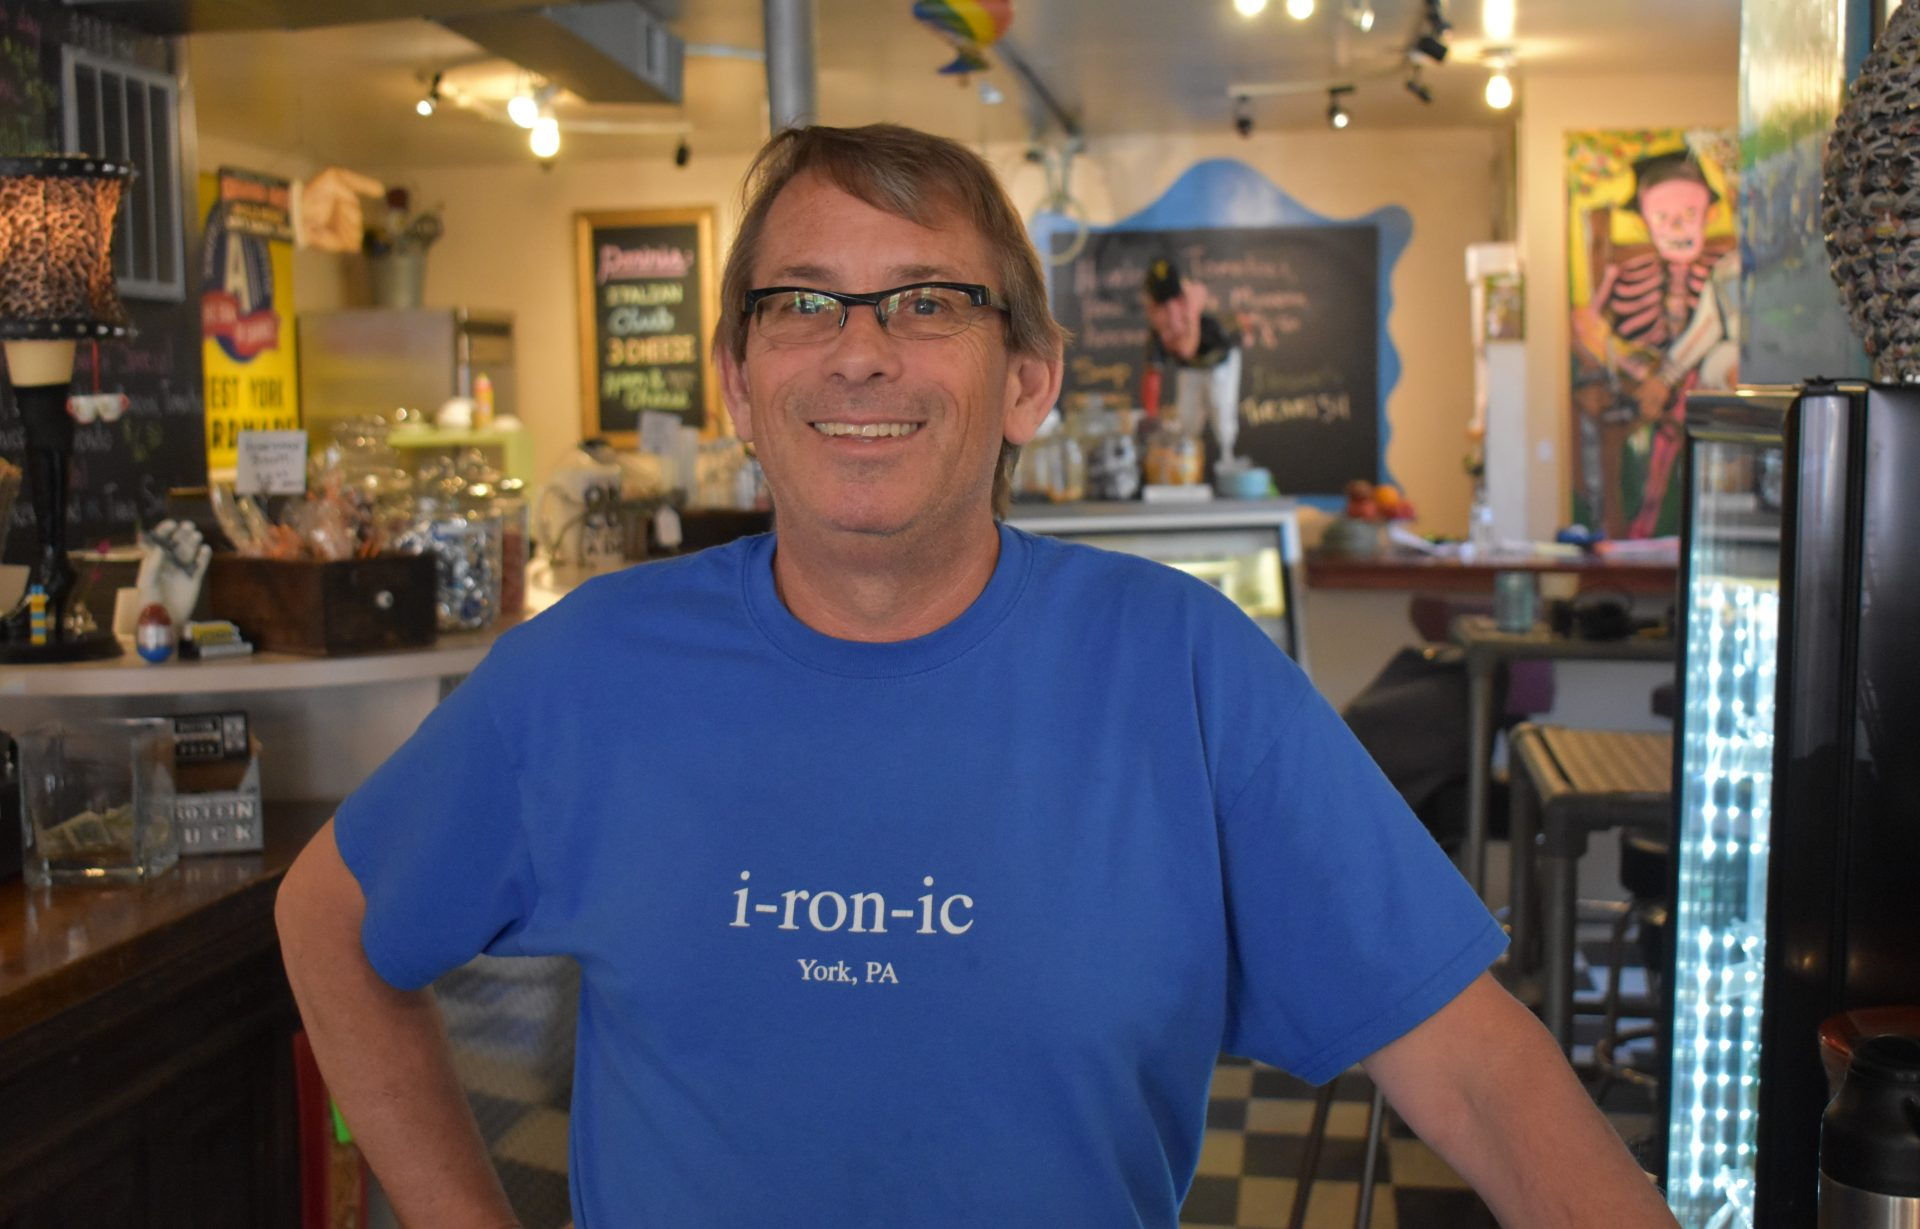 David Smith, co-owner of i-ron-ic in York, is seen at his coffee shop on June 12, 2019.